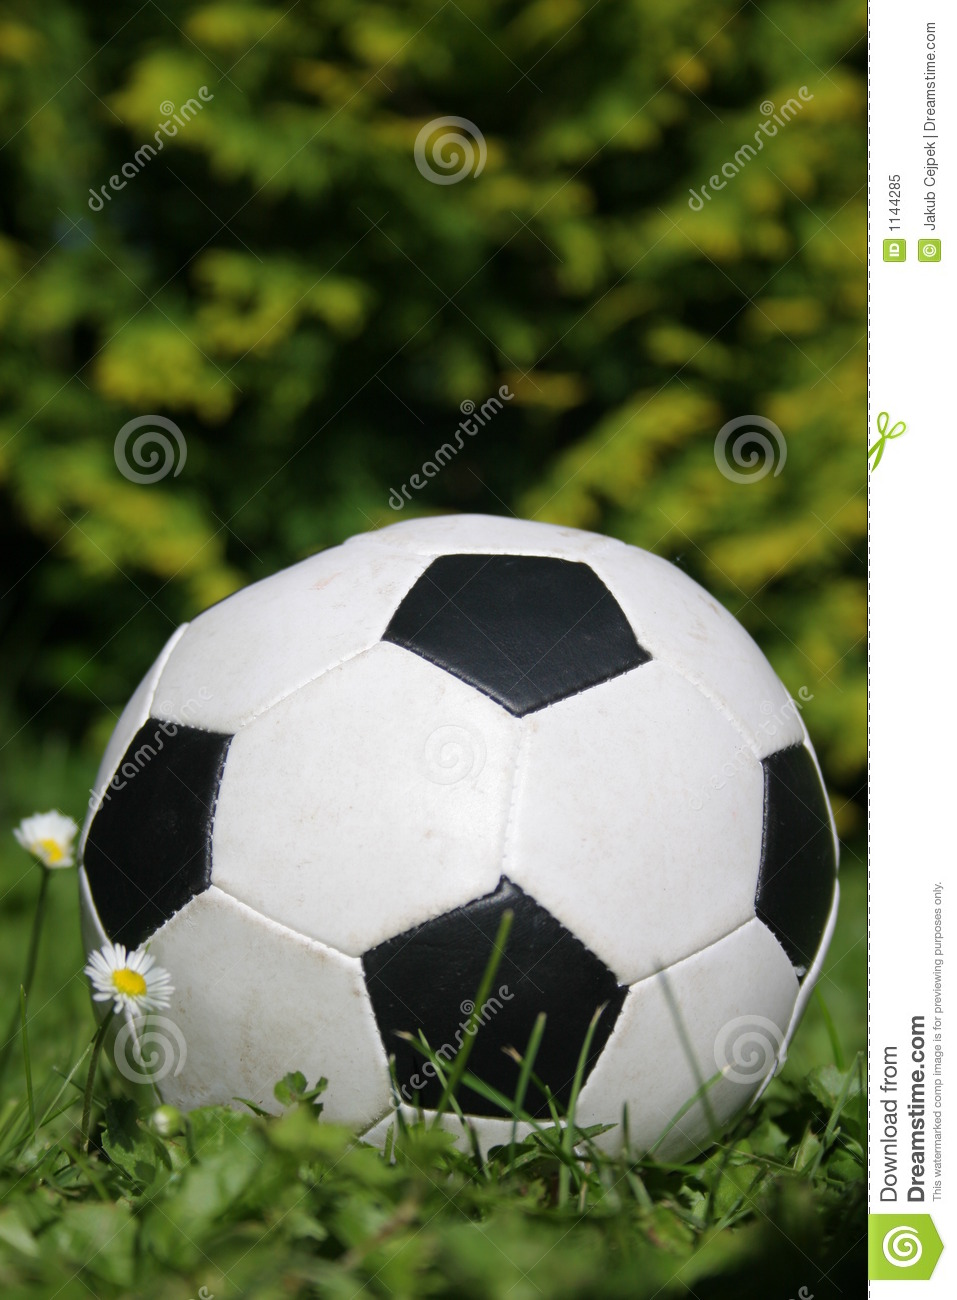 how to drive a soccer ball